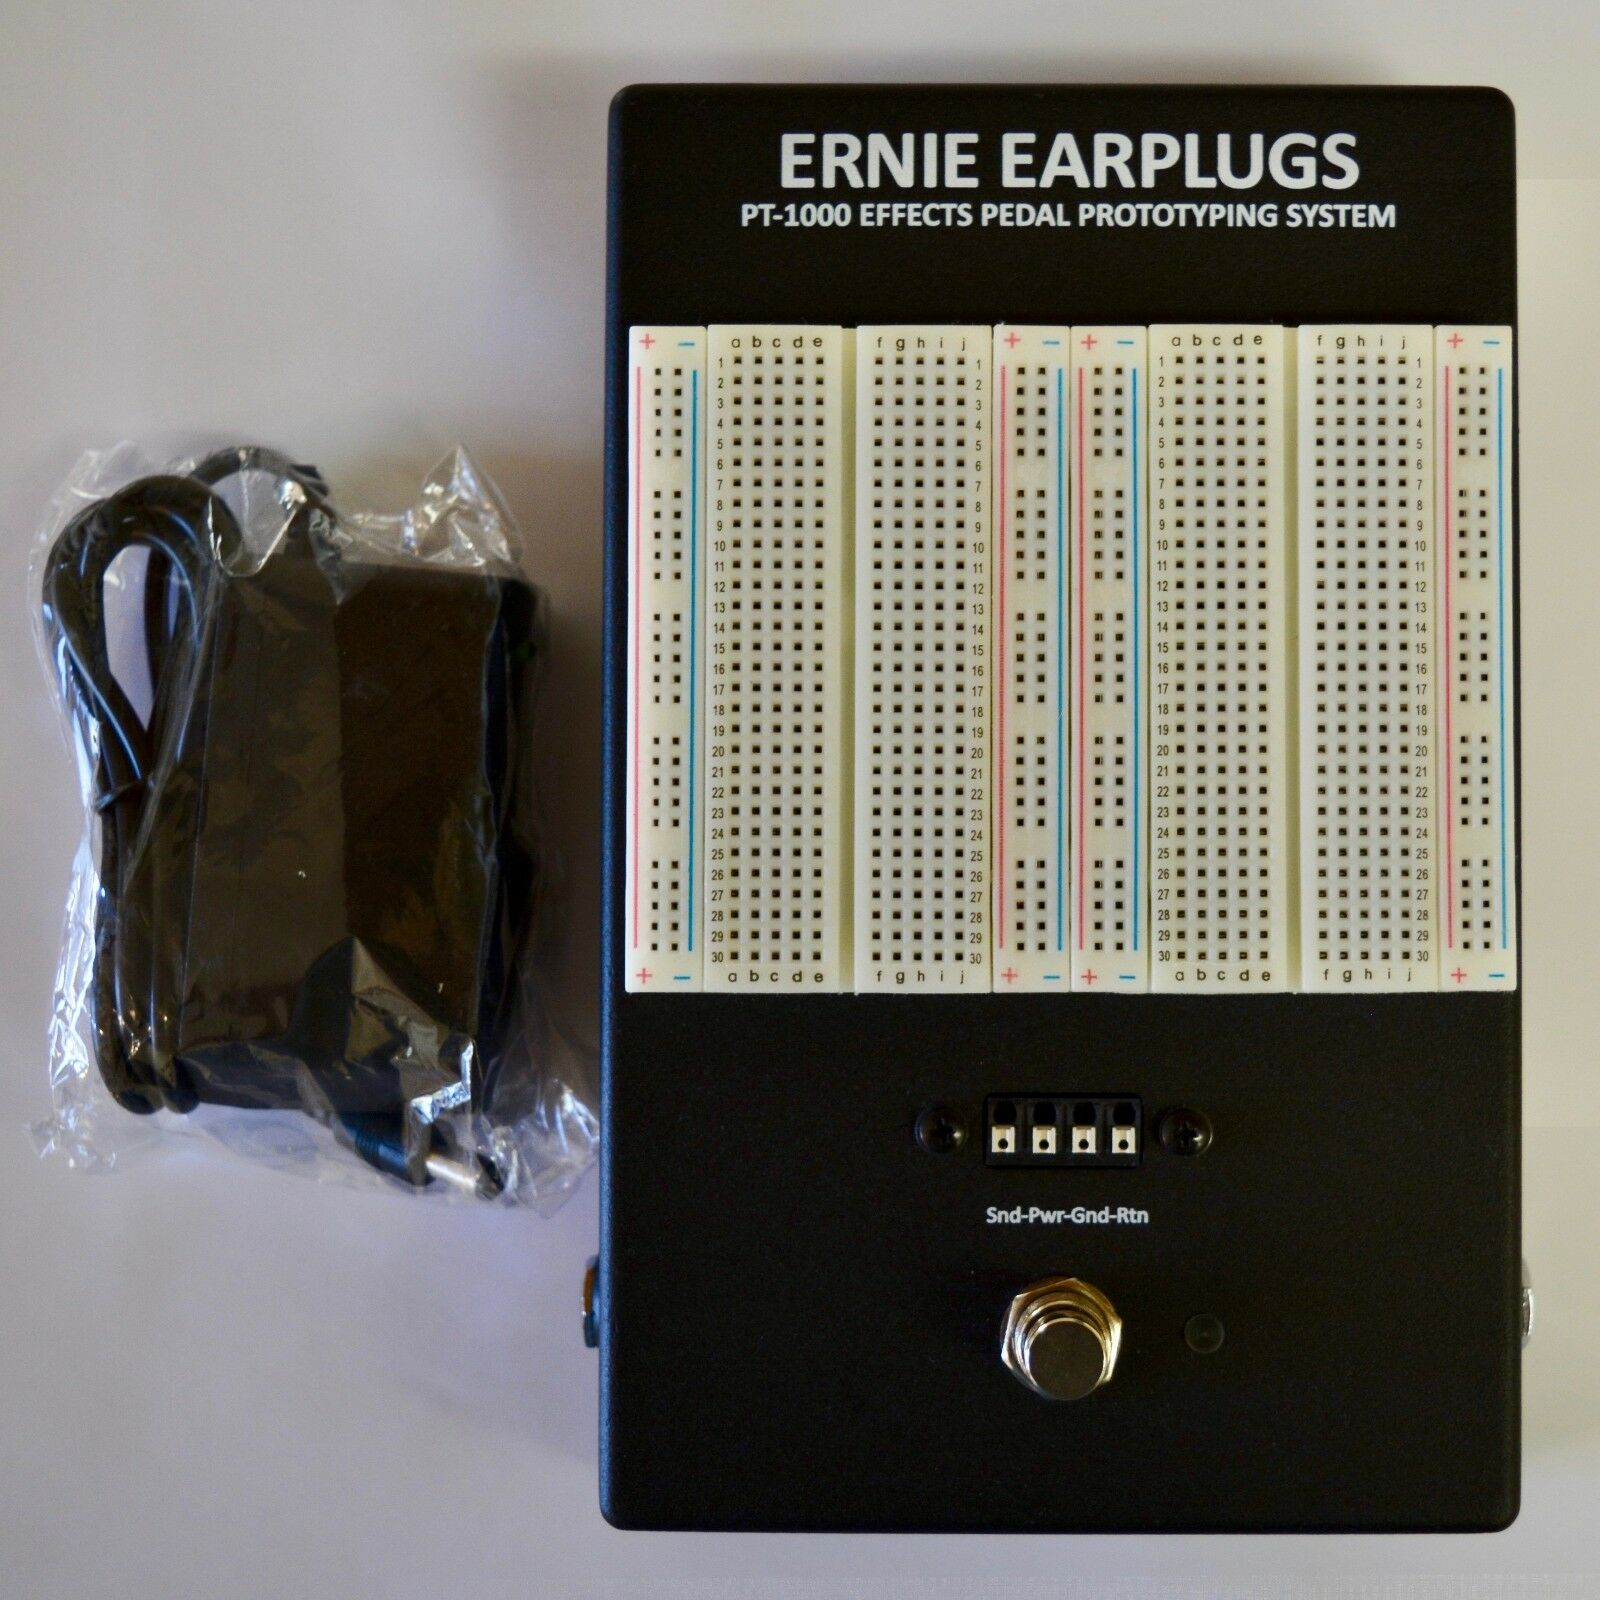 Ernie Earplugs PT-1000 Effects Pedal Prototyping System